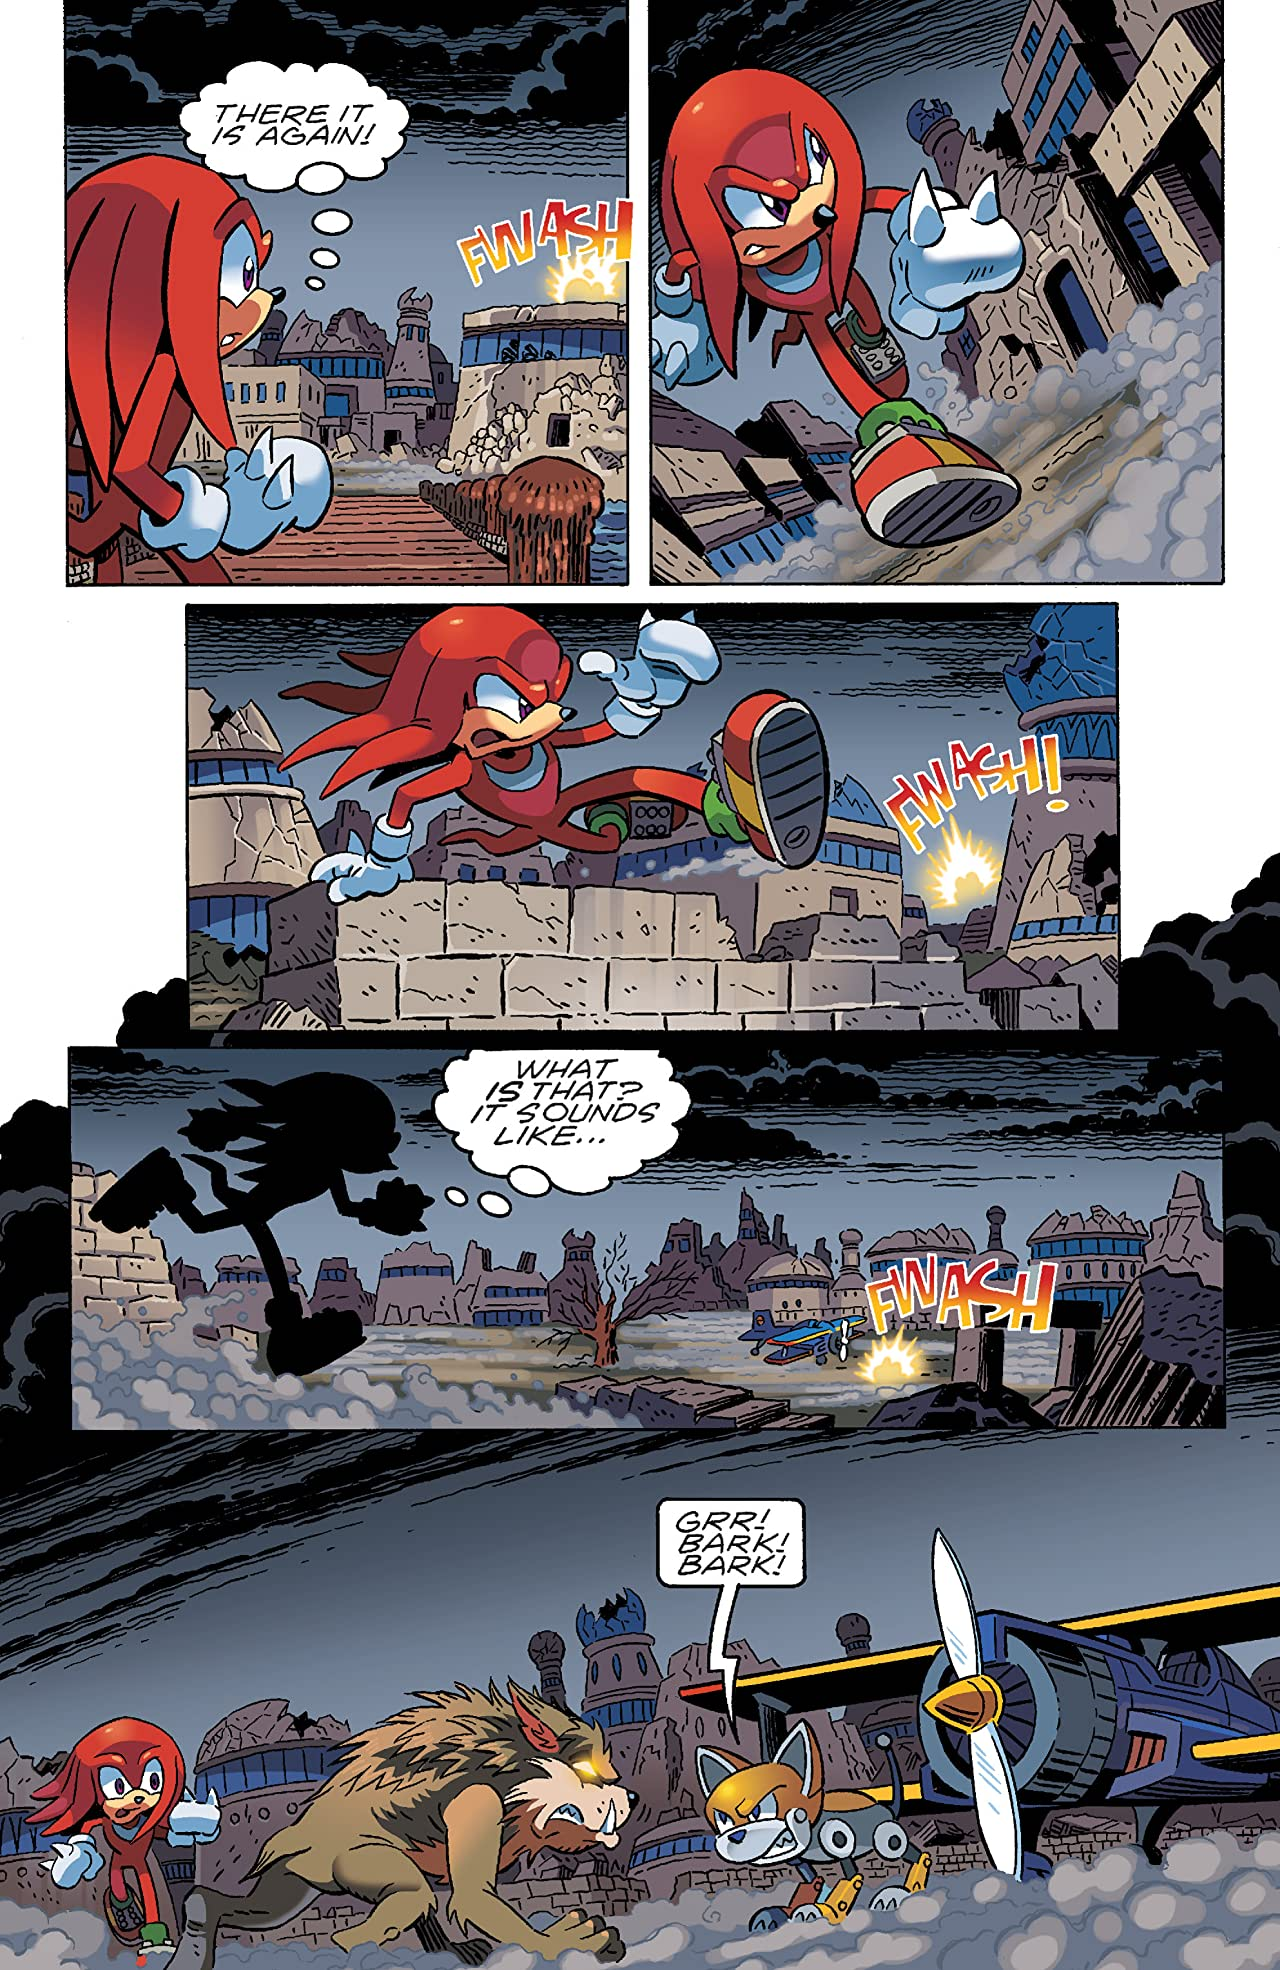 Sonic the Hedgehog #244